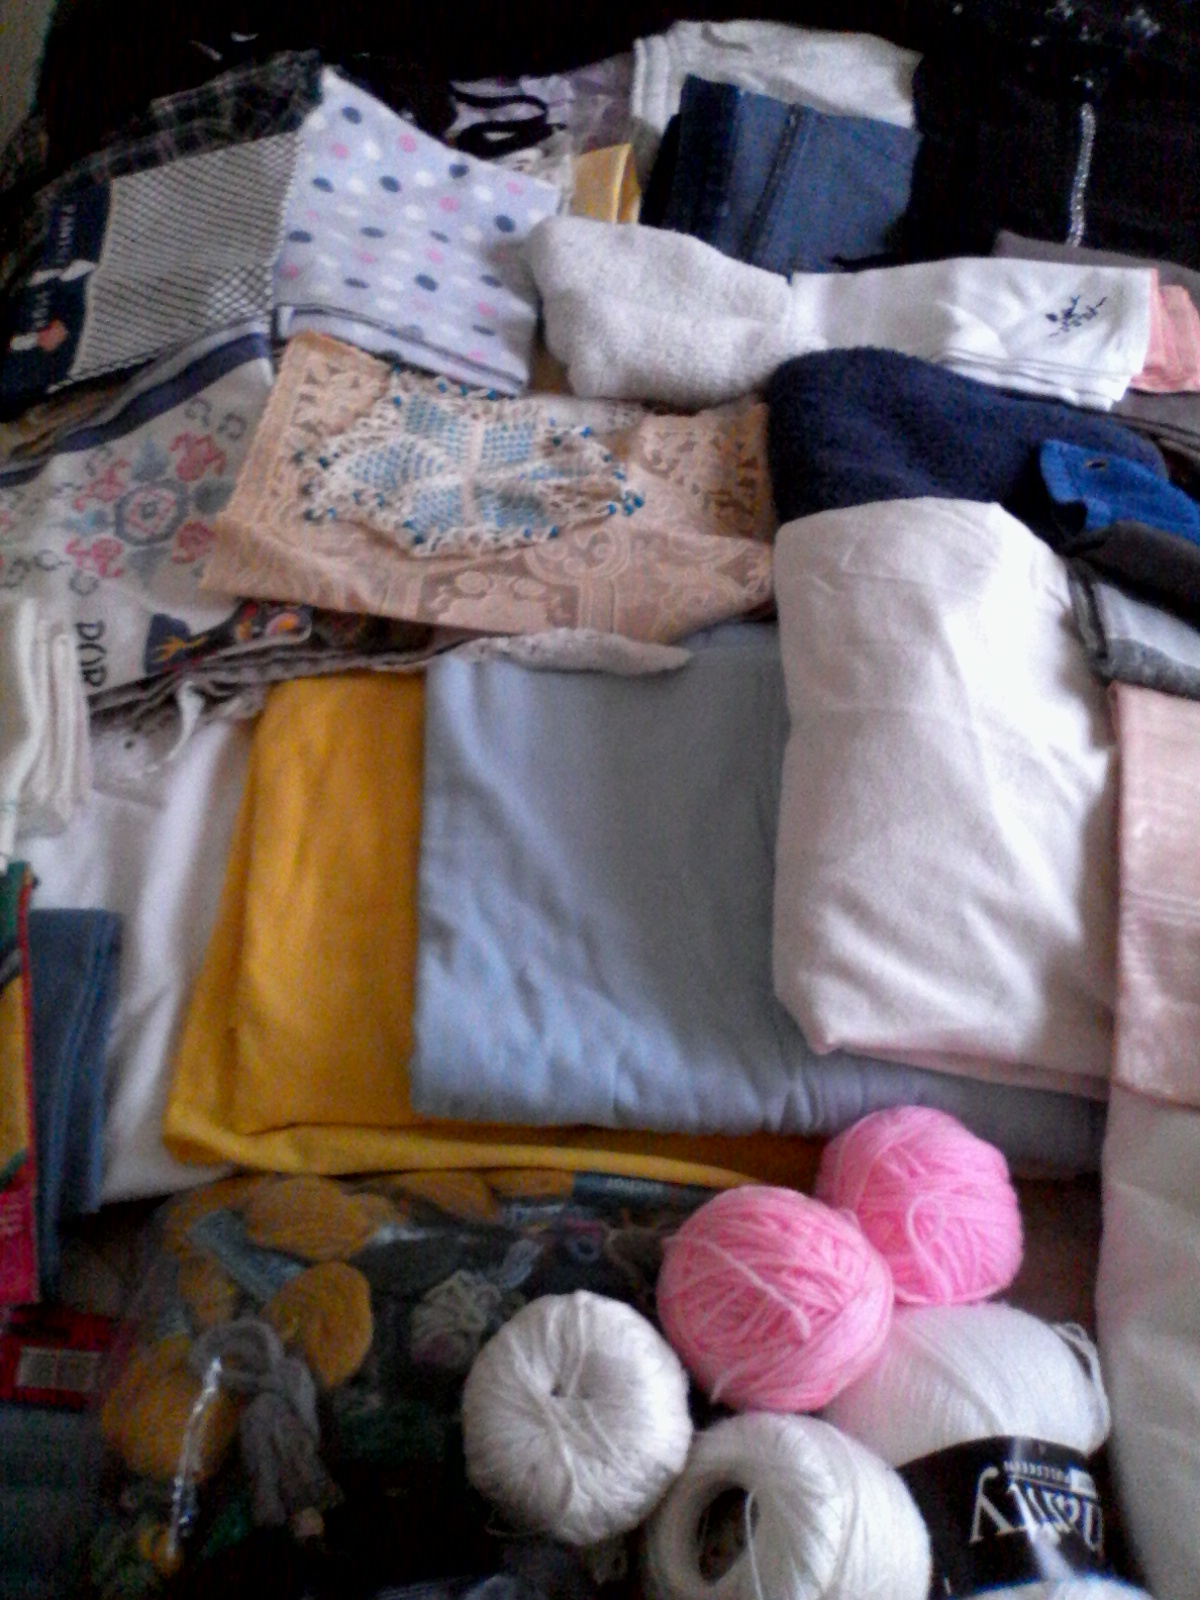 All different types of clothing etc